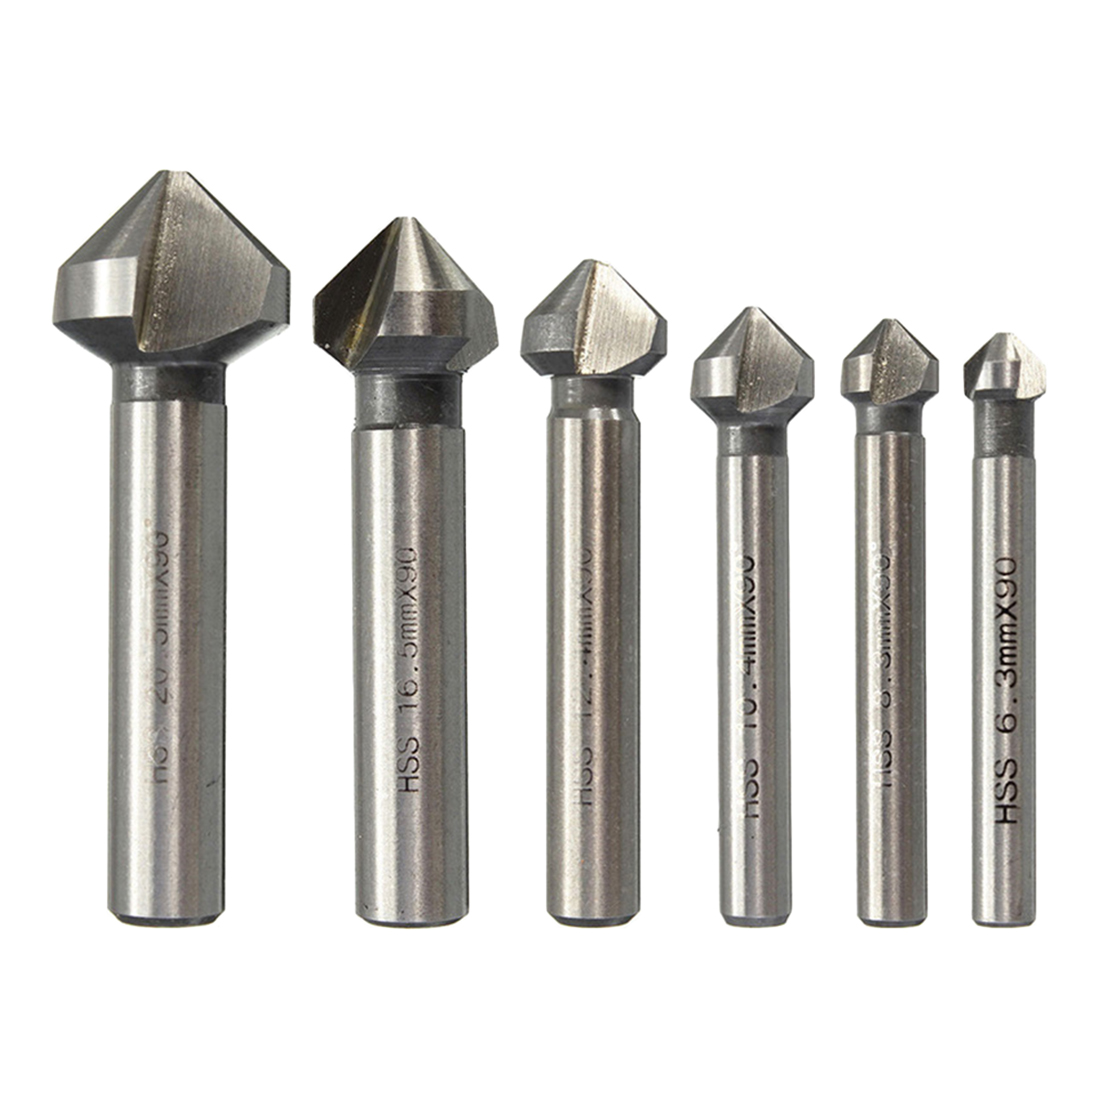 1pc 3 Flute HSS Countersink Drill Bit 90 Degree Chamfer Cutter Tool For Wood Steel 6.3/8.3/10.4/12.4/16.5/20.5mm